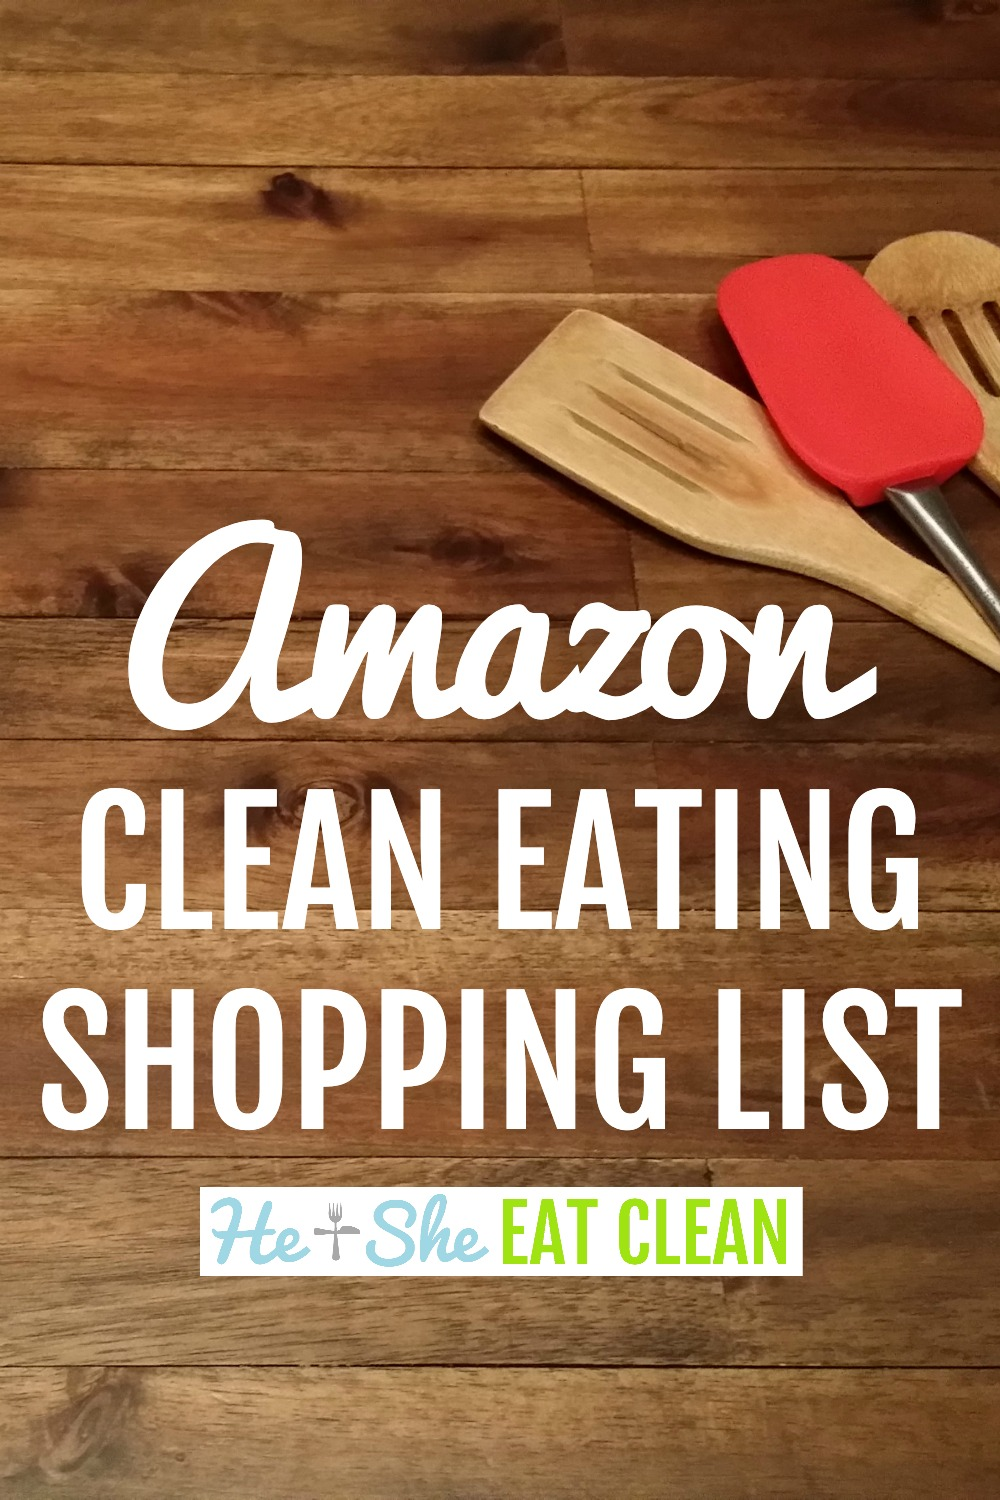 spatula and wooden utensil on a wooden table with text that reads Amazon Clean Eating Shopping List